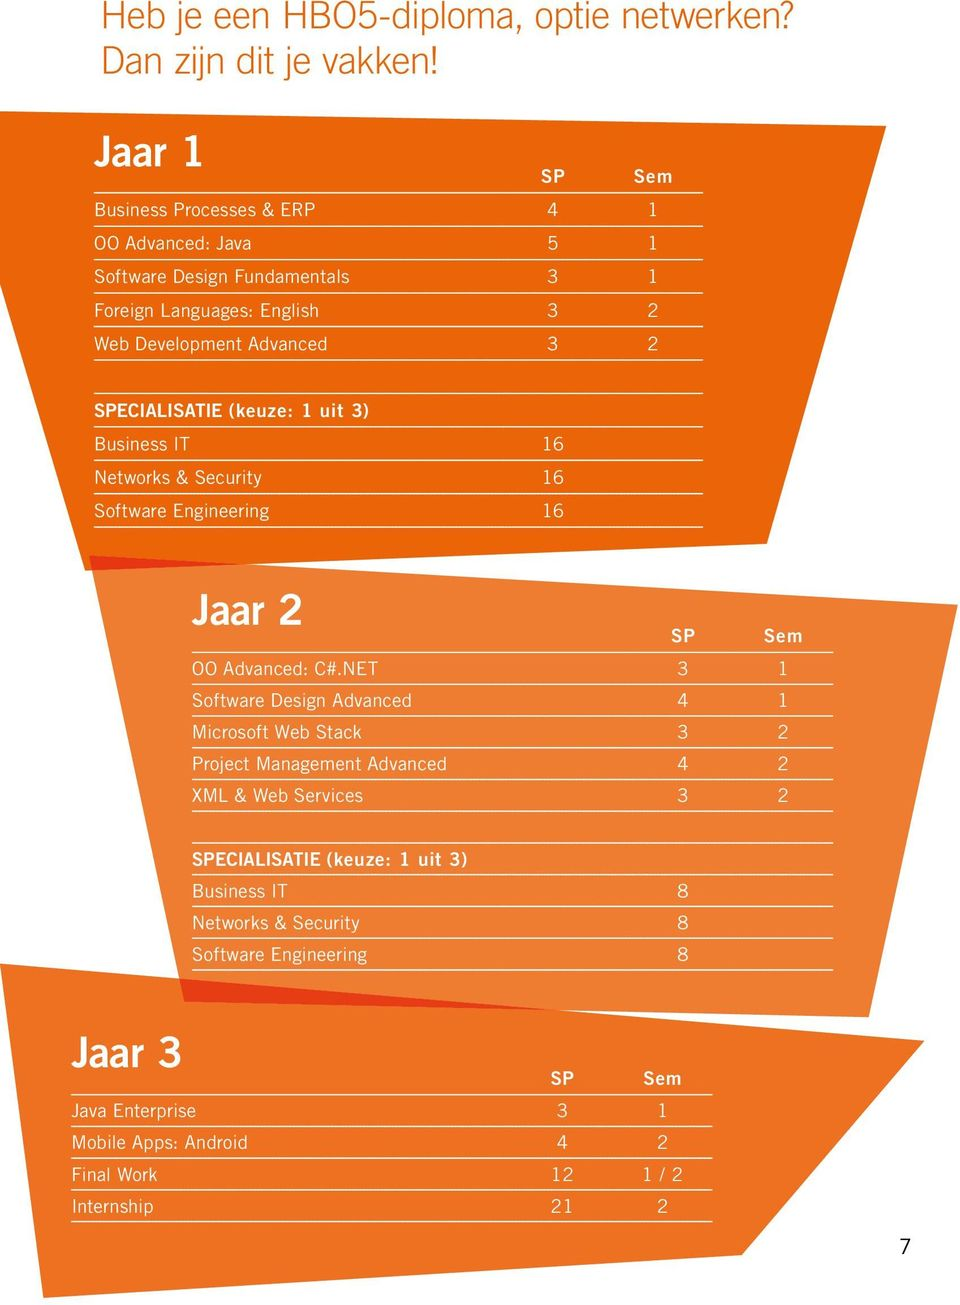 SPECIALISATIE (keuze: 1 uit 3) Business IT 16 Networks & Security 16 Software Engineering 16 Jaar 2 OO Advanced: C#.